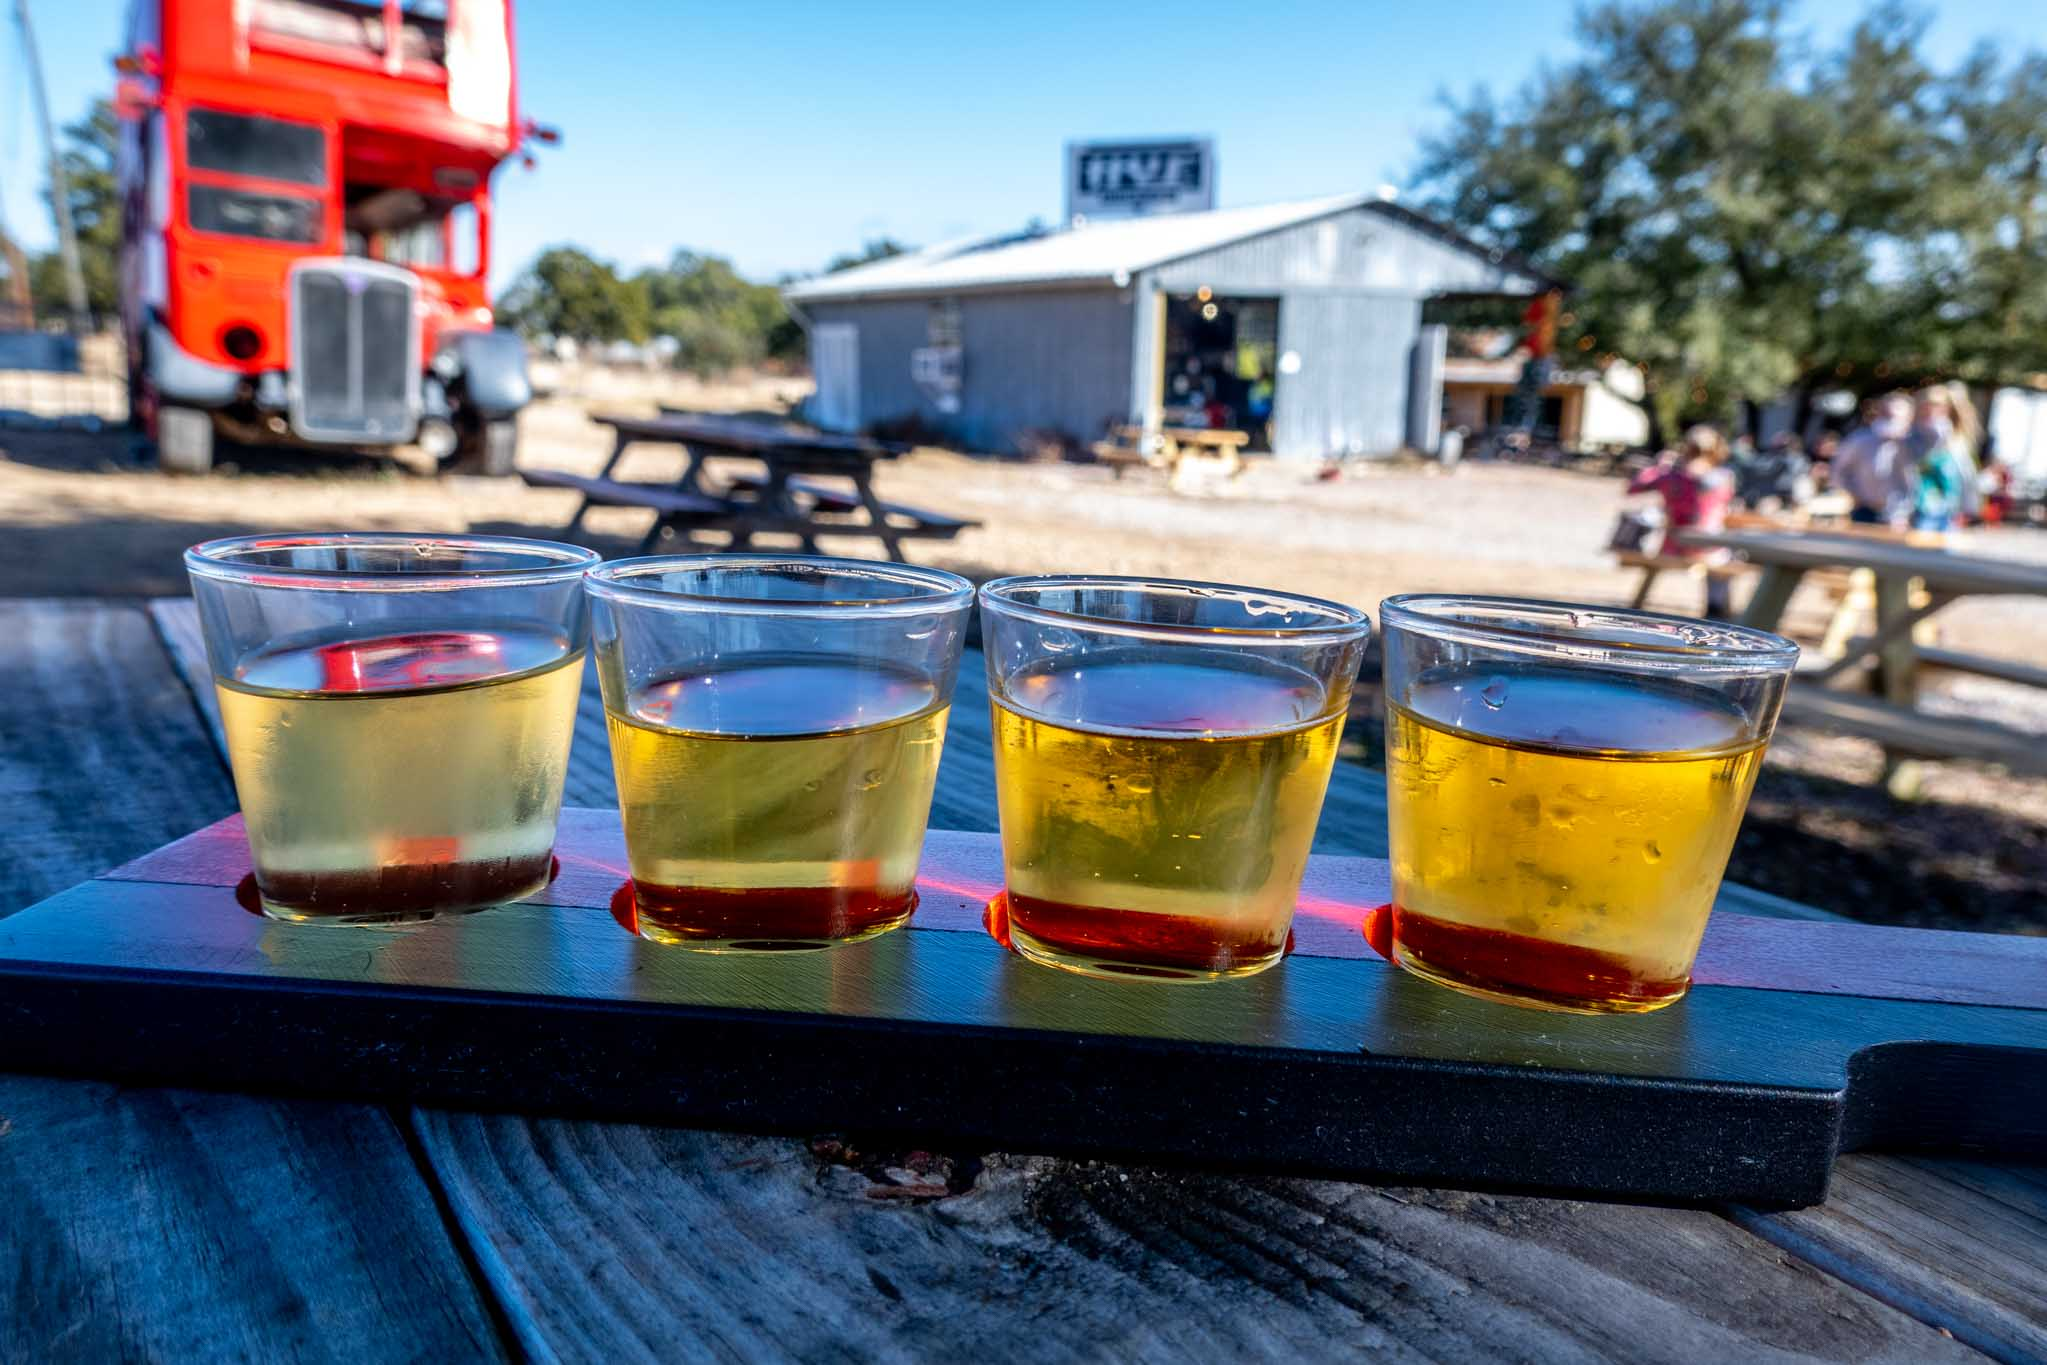 Flight of 4 glasses of cider on a picnic table